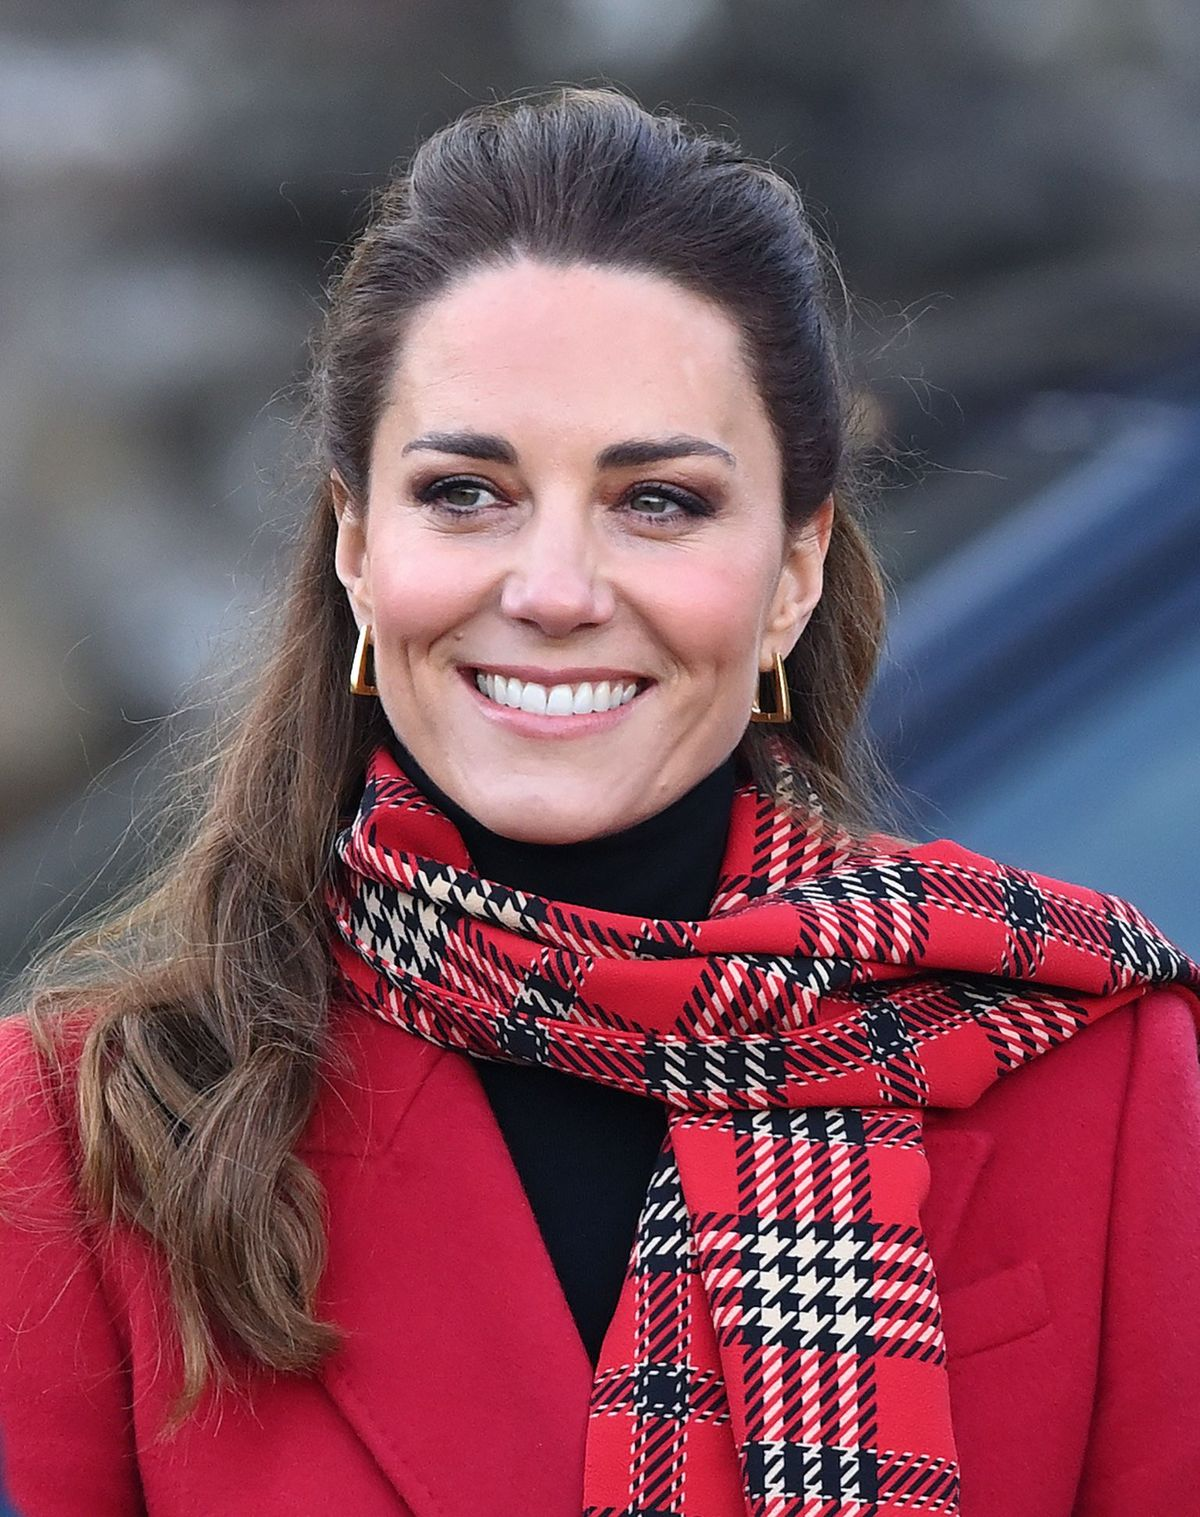 Kate Middleton December 8, 2020 in Cardiff, Wales | Getty Images